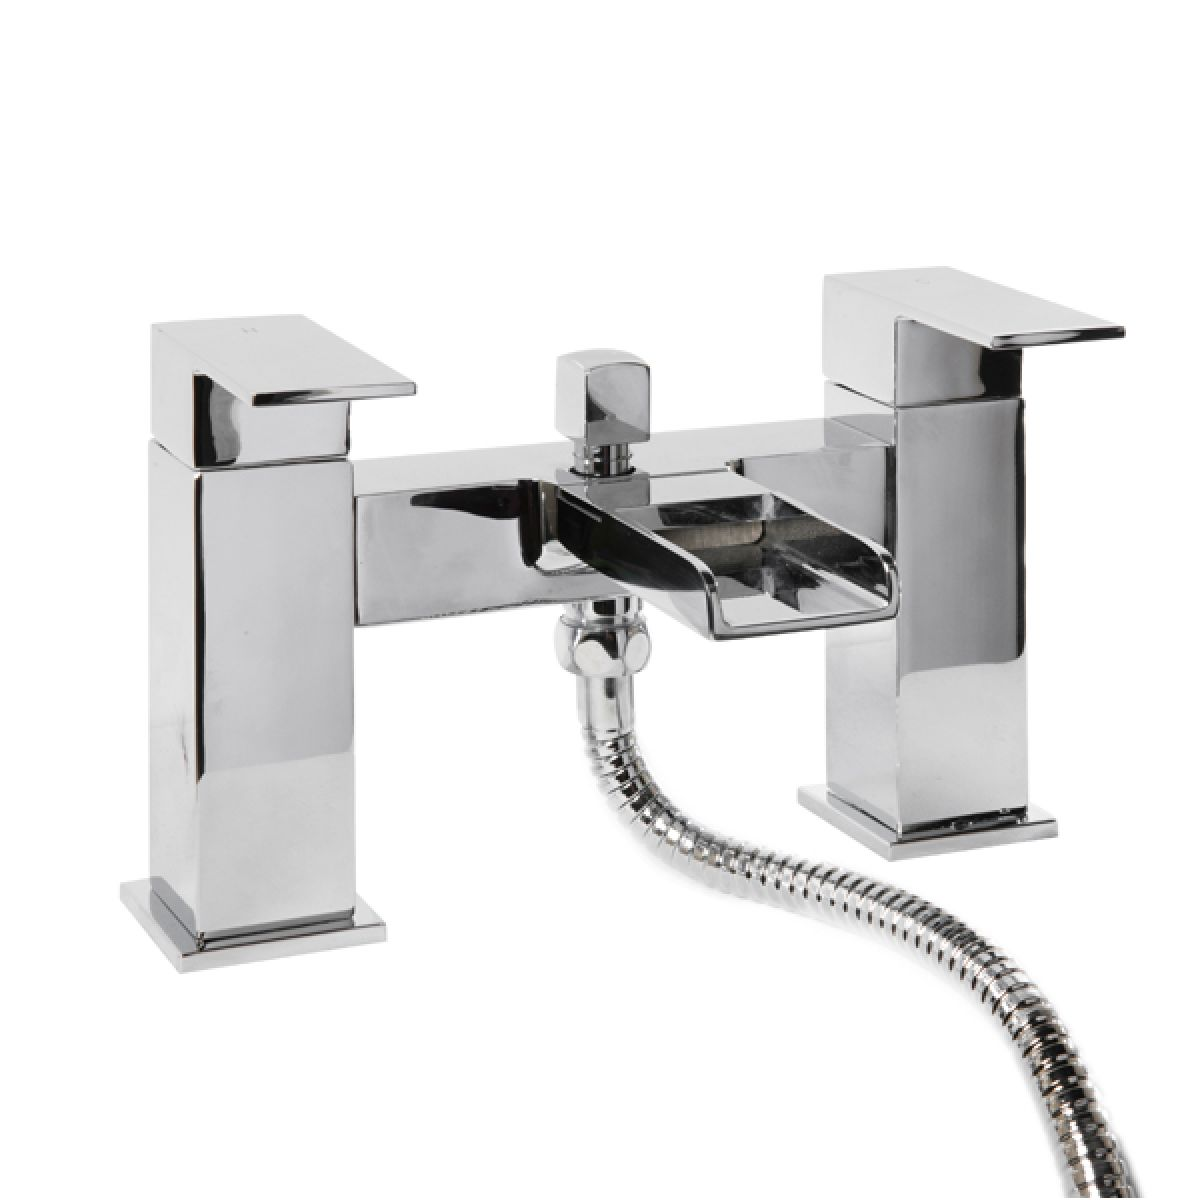 Eurostream Ricco Bath Shower Mixer